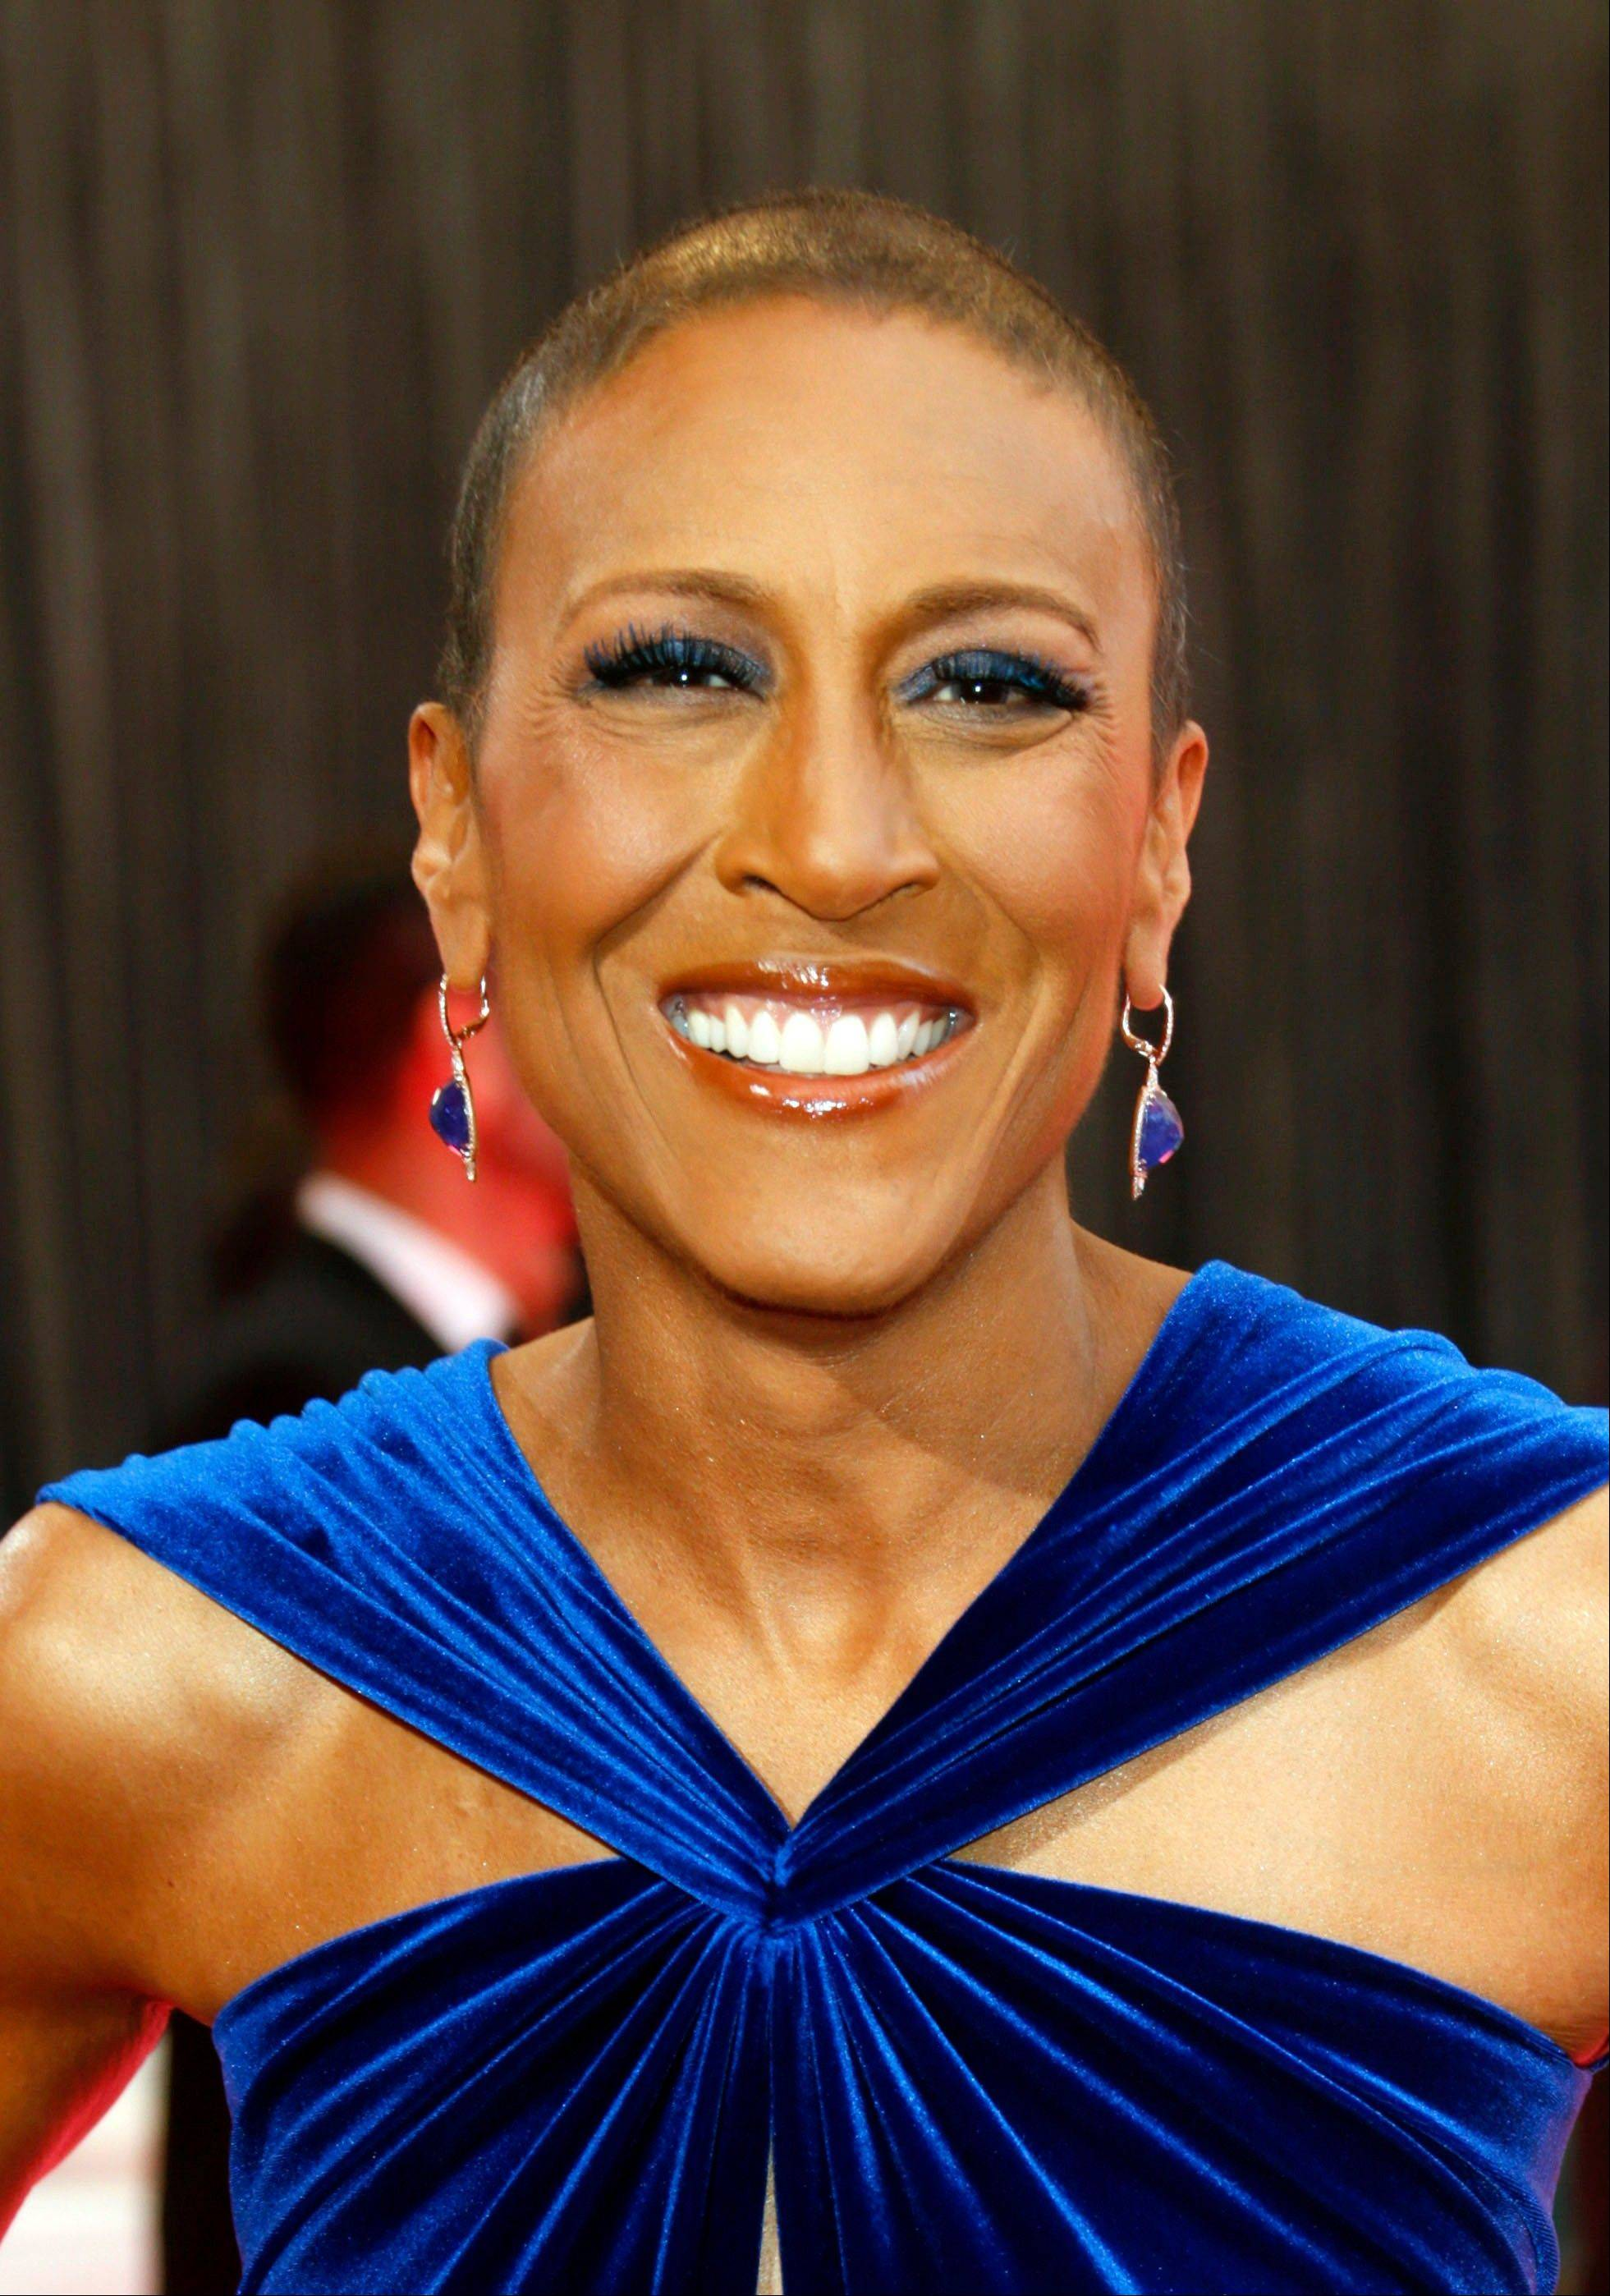 "This Feb. 24, 2013 file photo shows broadcaster Robin Roberts arriving at the 85th Academy Awards at the Dolby Theatre in Los Angeles. Roberts thanked her longtime girlfriend, Amber Laign, in a year-end post published on the ABC News anchor�s Facebook page on Sunday, Dec. 29, 2013. The message comes after Roberts' battle with a life-threatening illness. This is the first time the ""Good Morning America"" anchor has publicly acknowledged her 10-year, same-sex relationship with Laign, a massage therapist from the San Francisco Bay Area, who focuses on patients recovering from injuries."